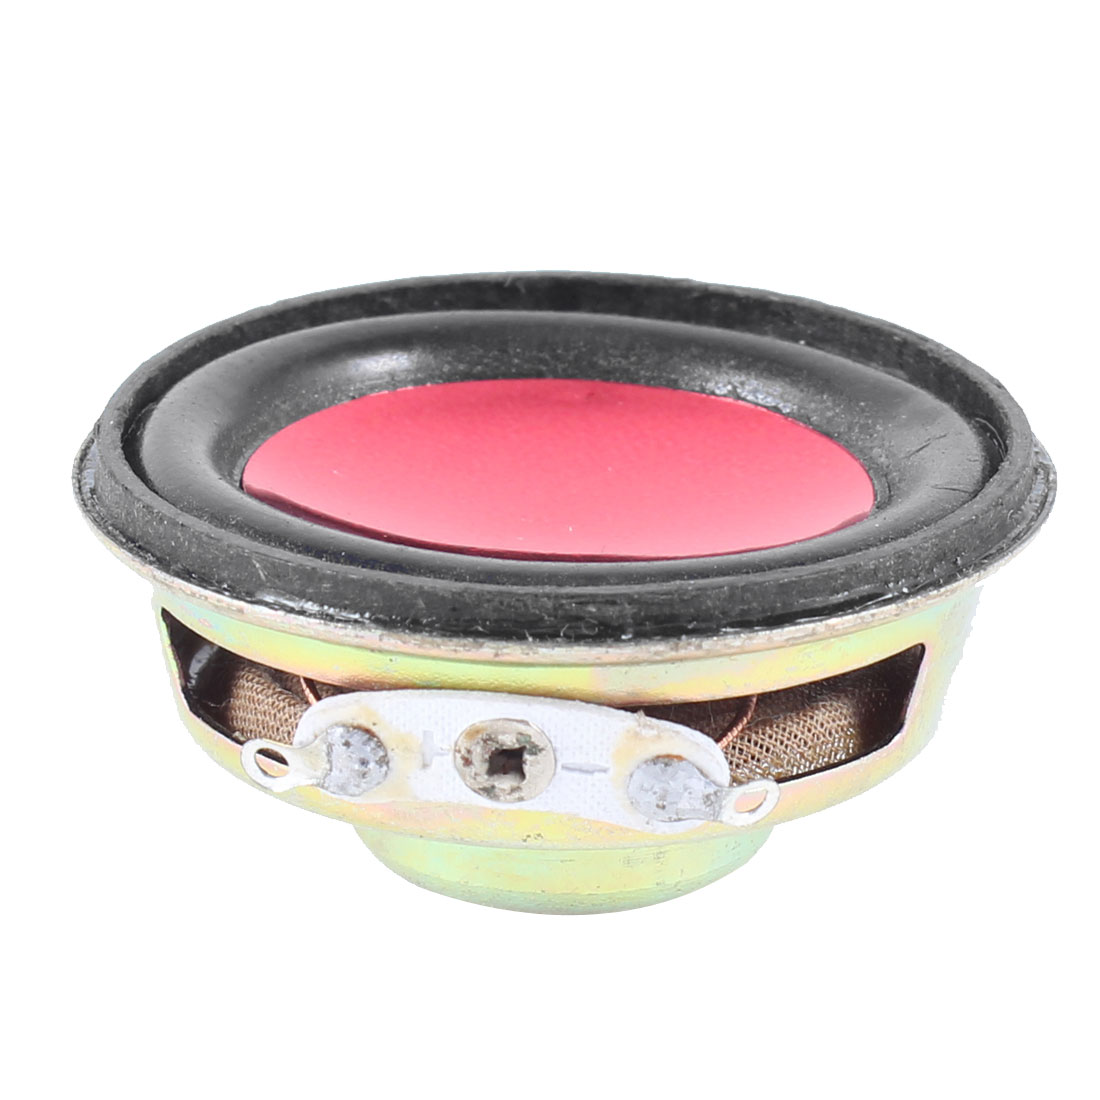 Fuchsia 40mm Dia Round Internal Magnet Speaker Trumpet Horn 4 Ohm 3W